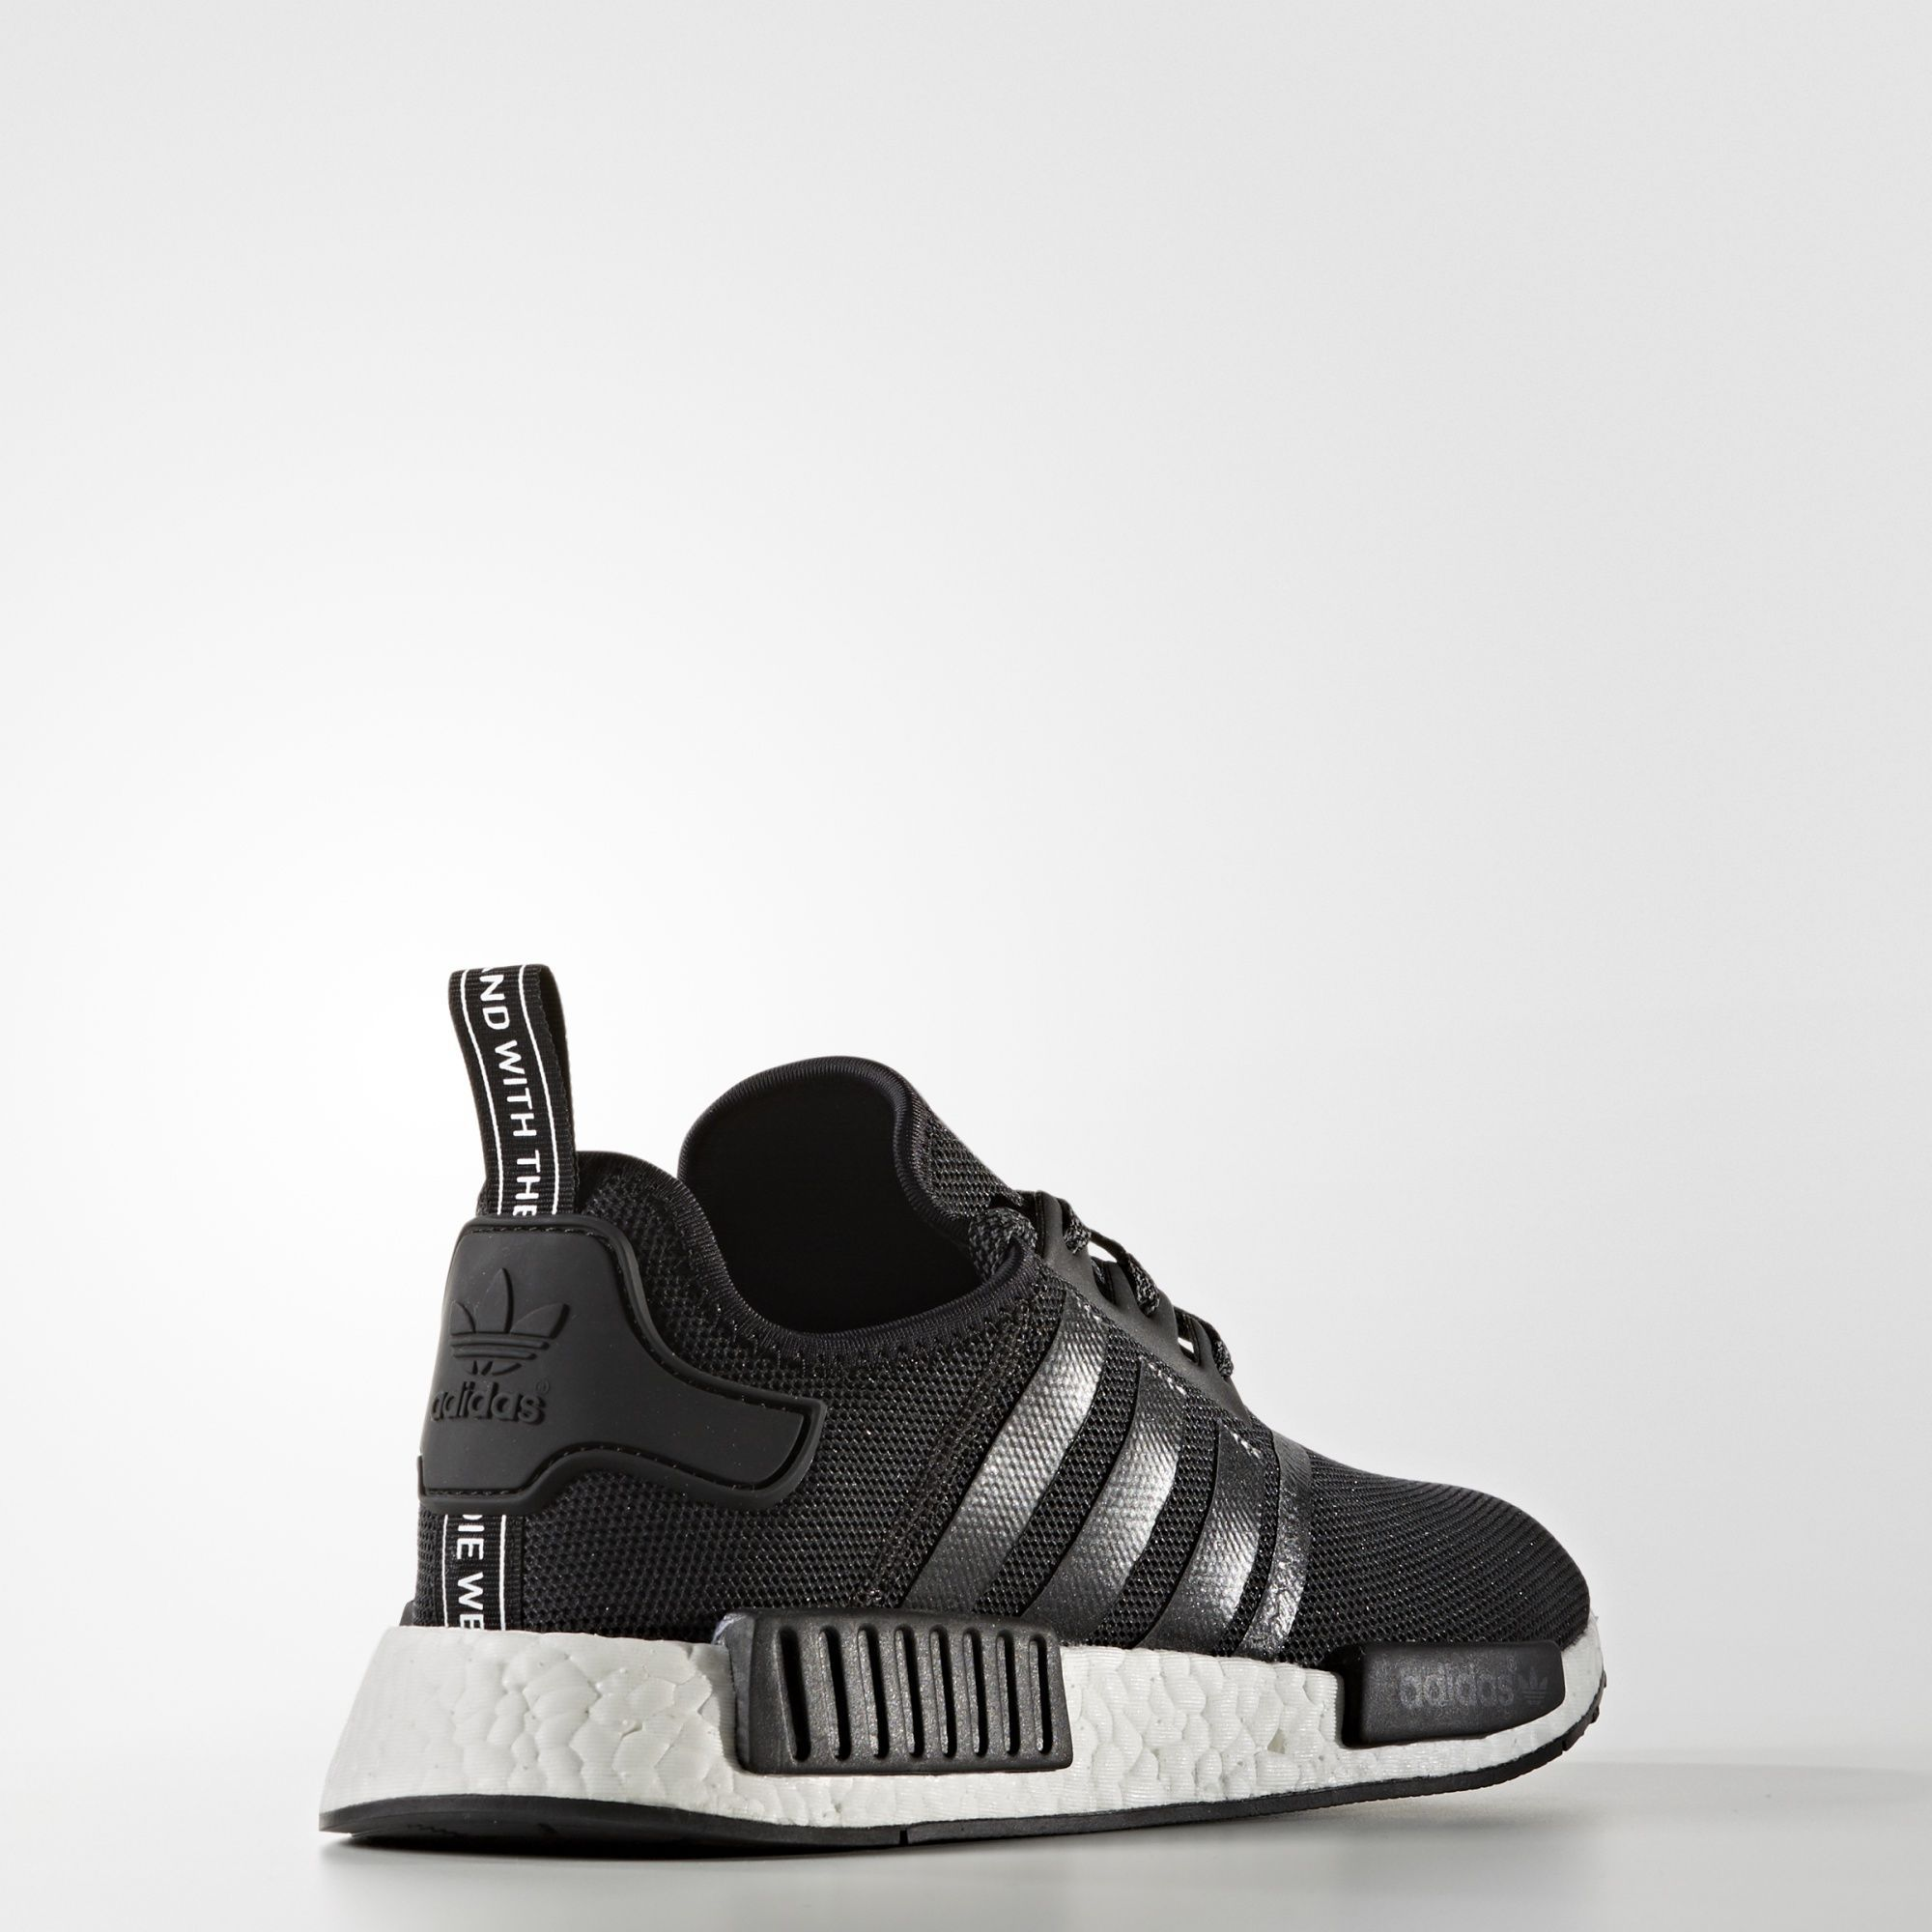 sports shoes b03c9 19355 Adidas NMD R1 Reflective Core Black S31505 Core BlackCore BlackFTWR  White